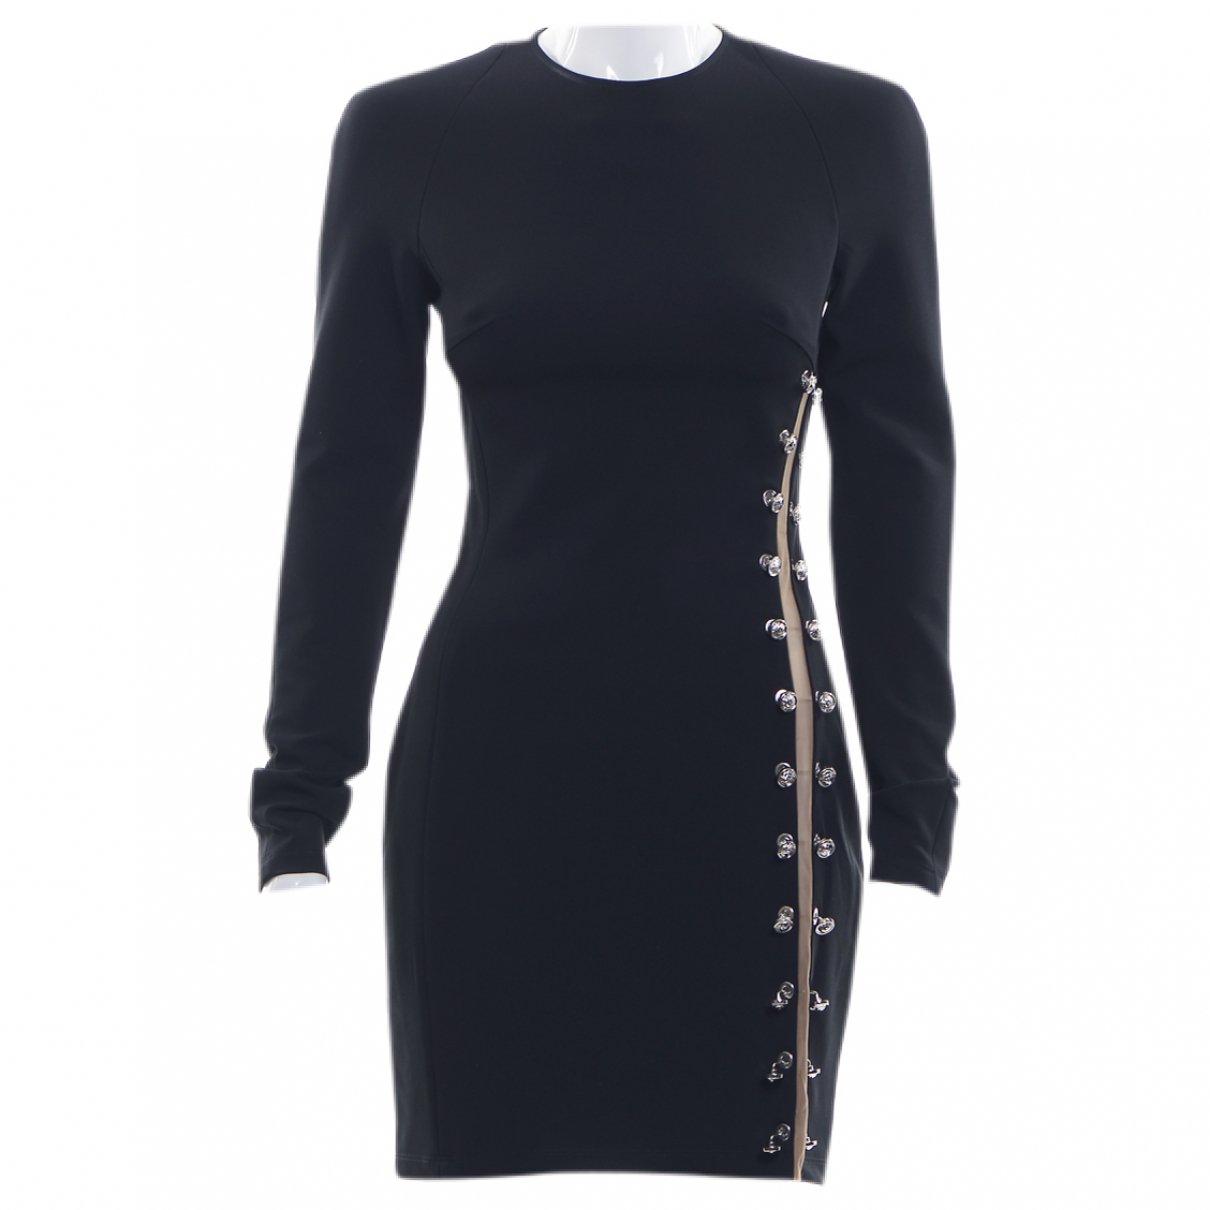 Versus \N Black dress for Women 42 IT